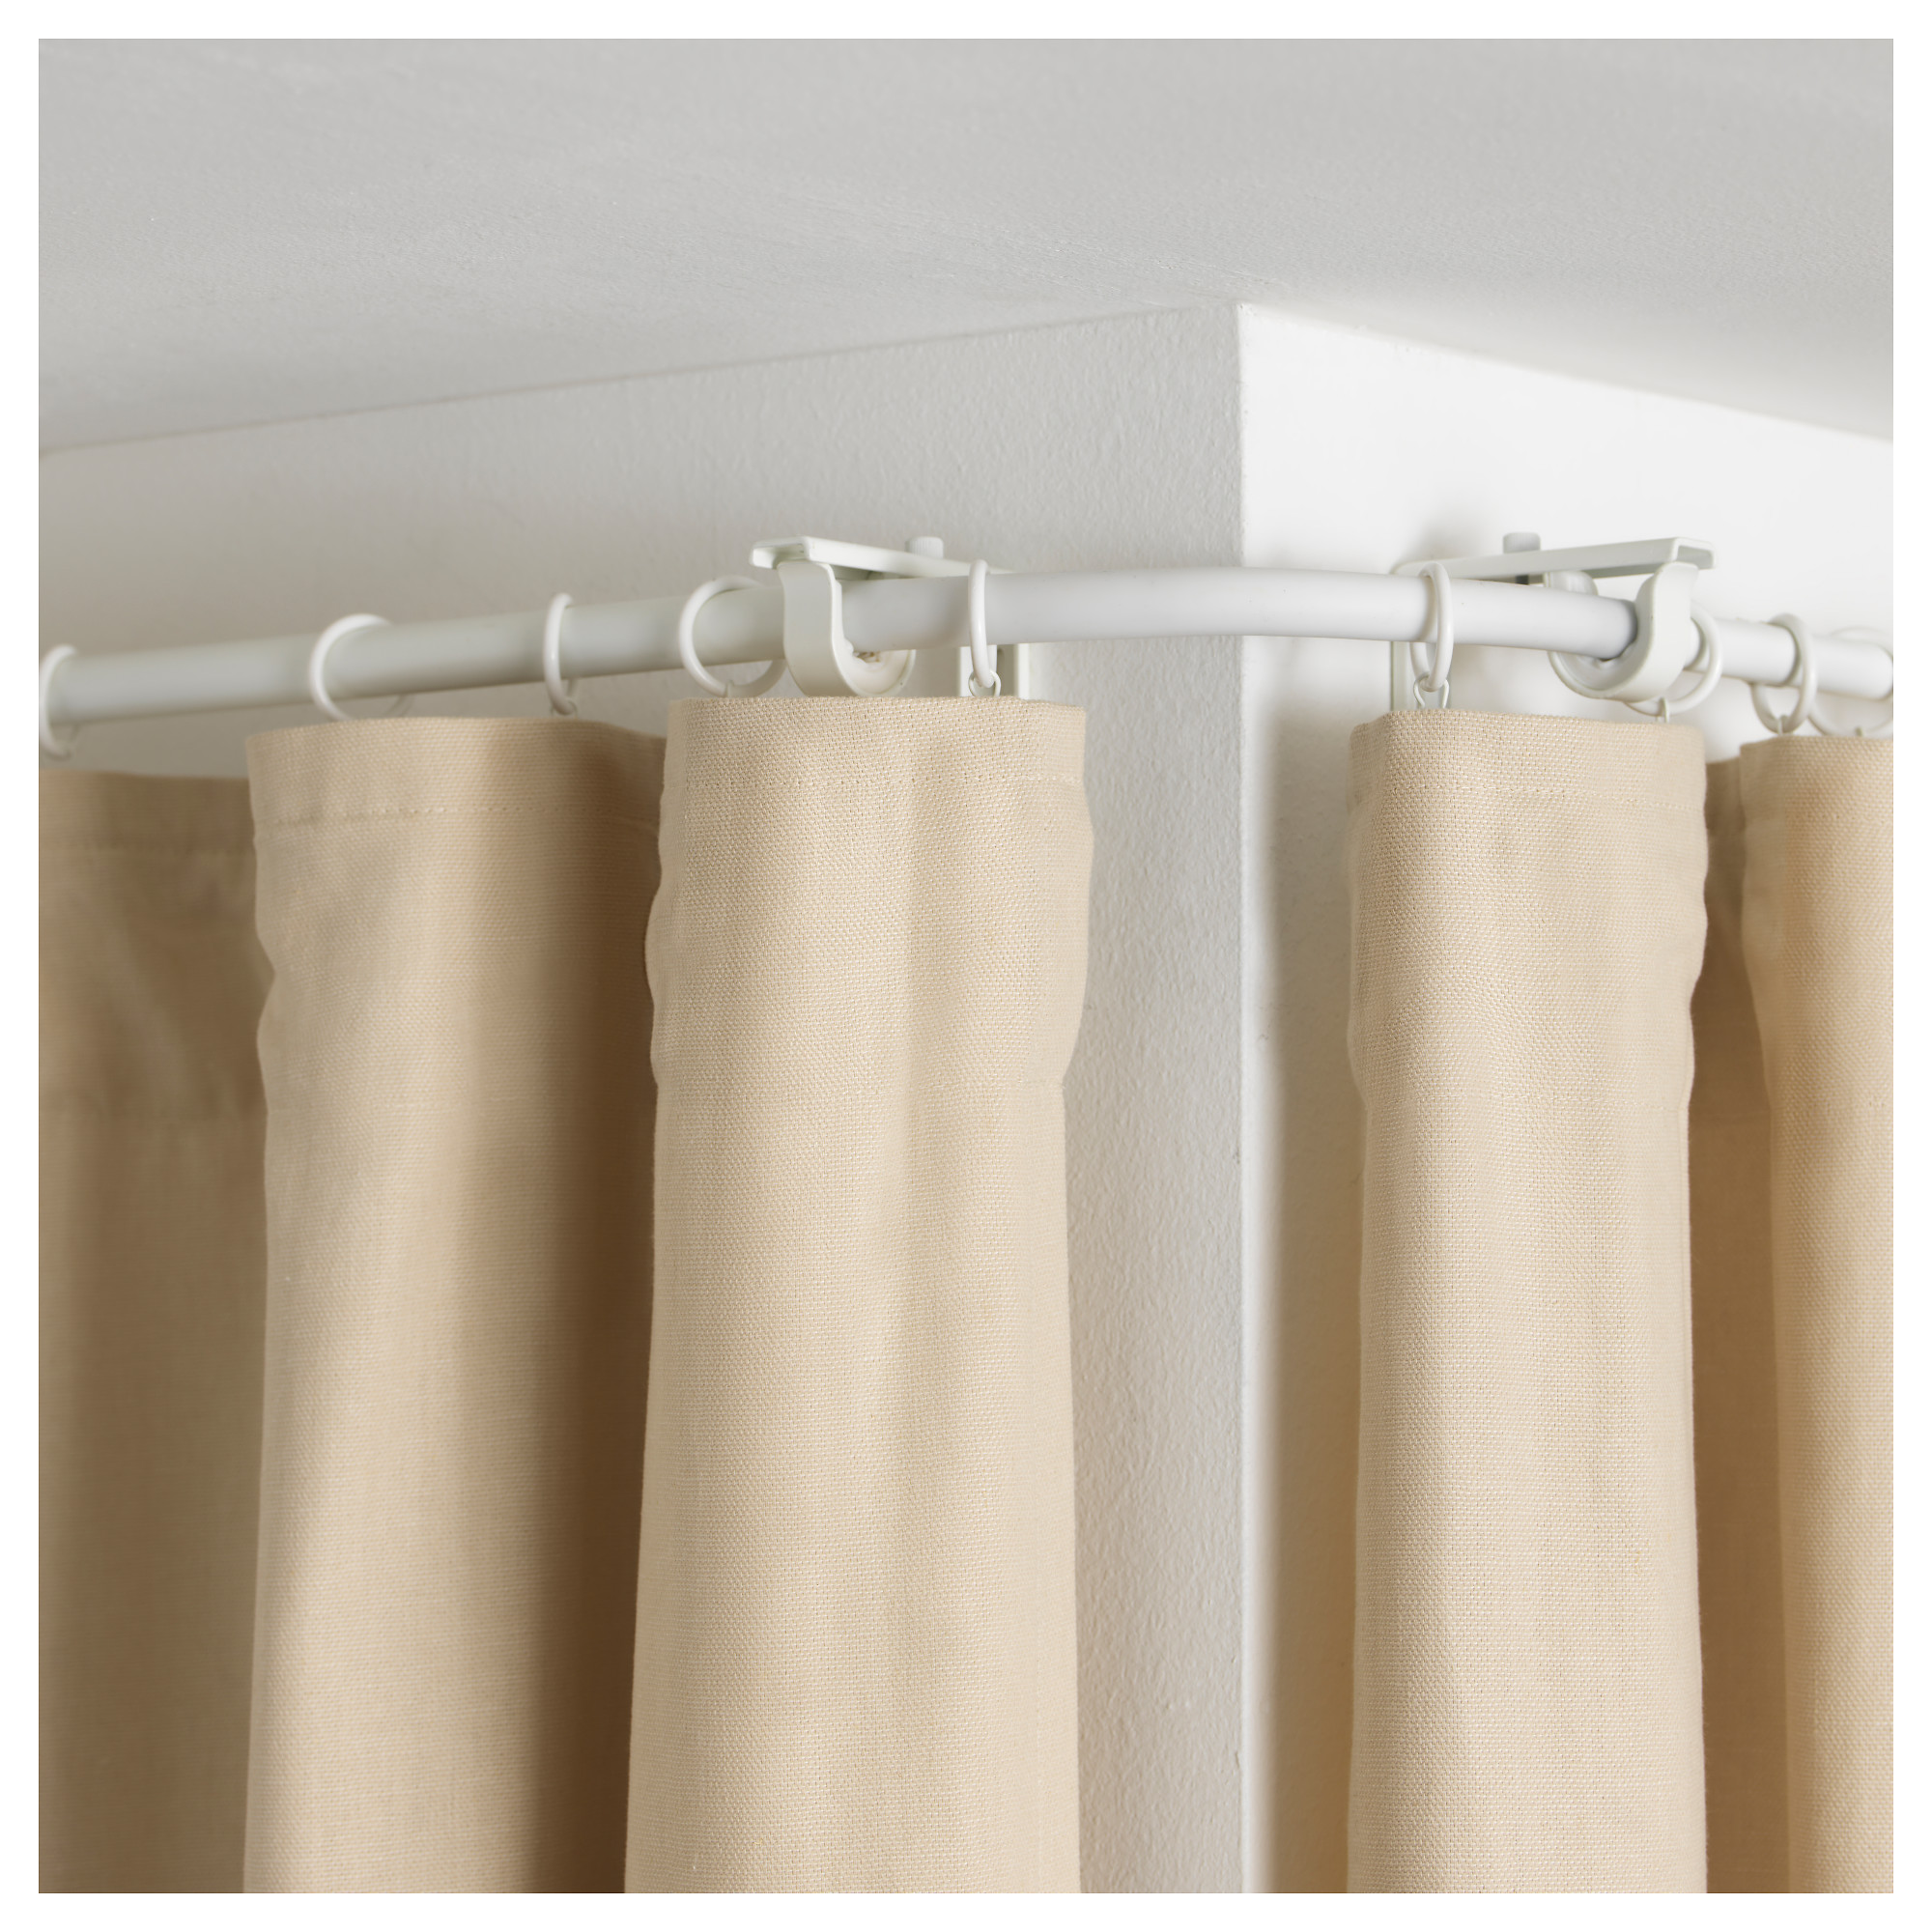 Curtain Rod Corner Connector | Angled Curtain Rod | Lowes Drapery Hardware